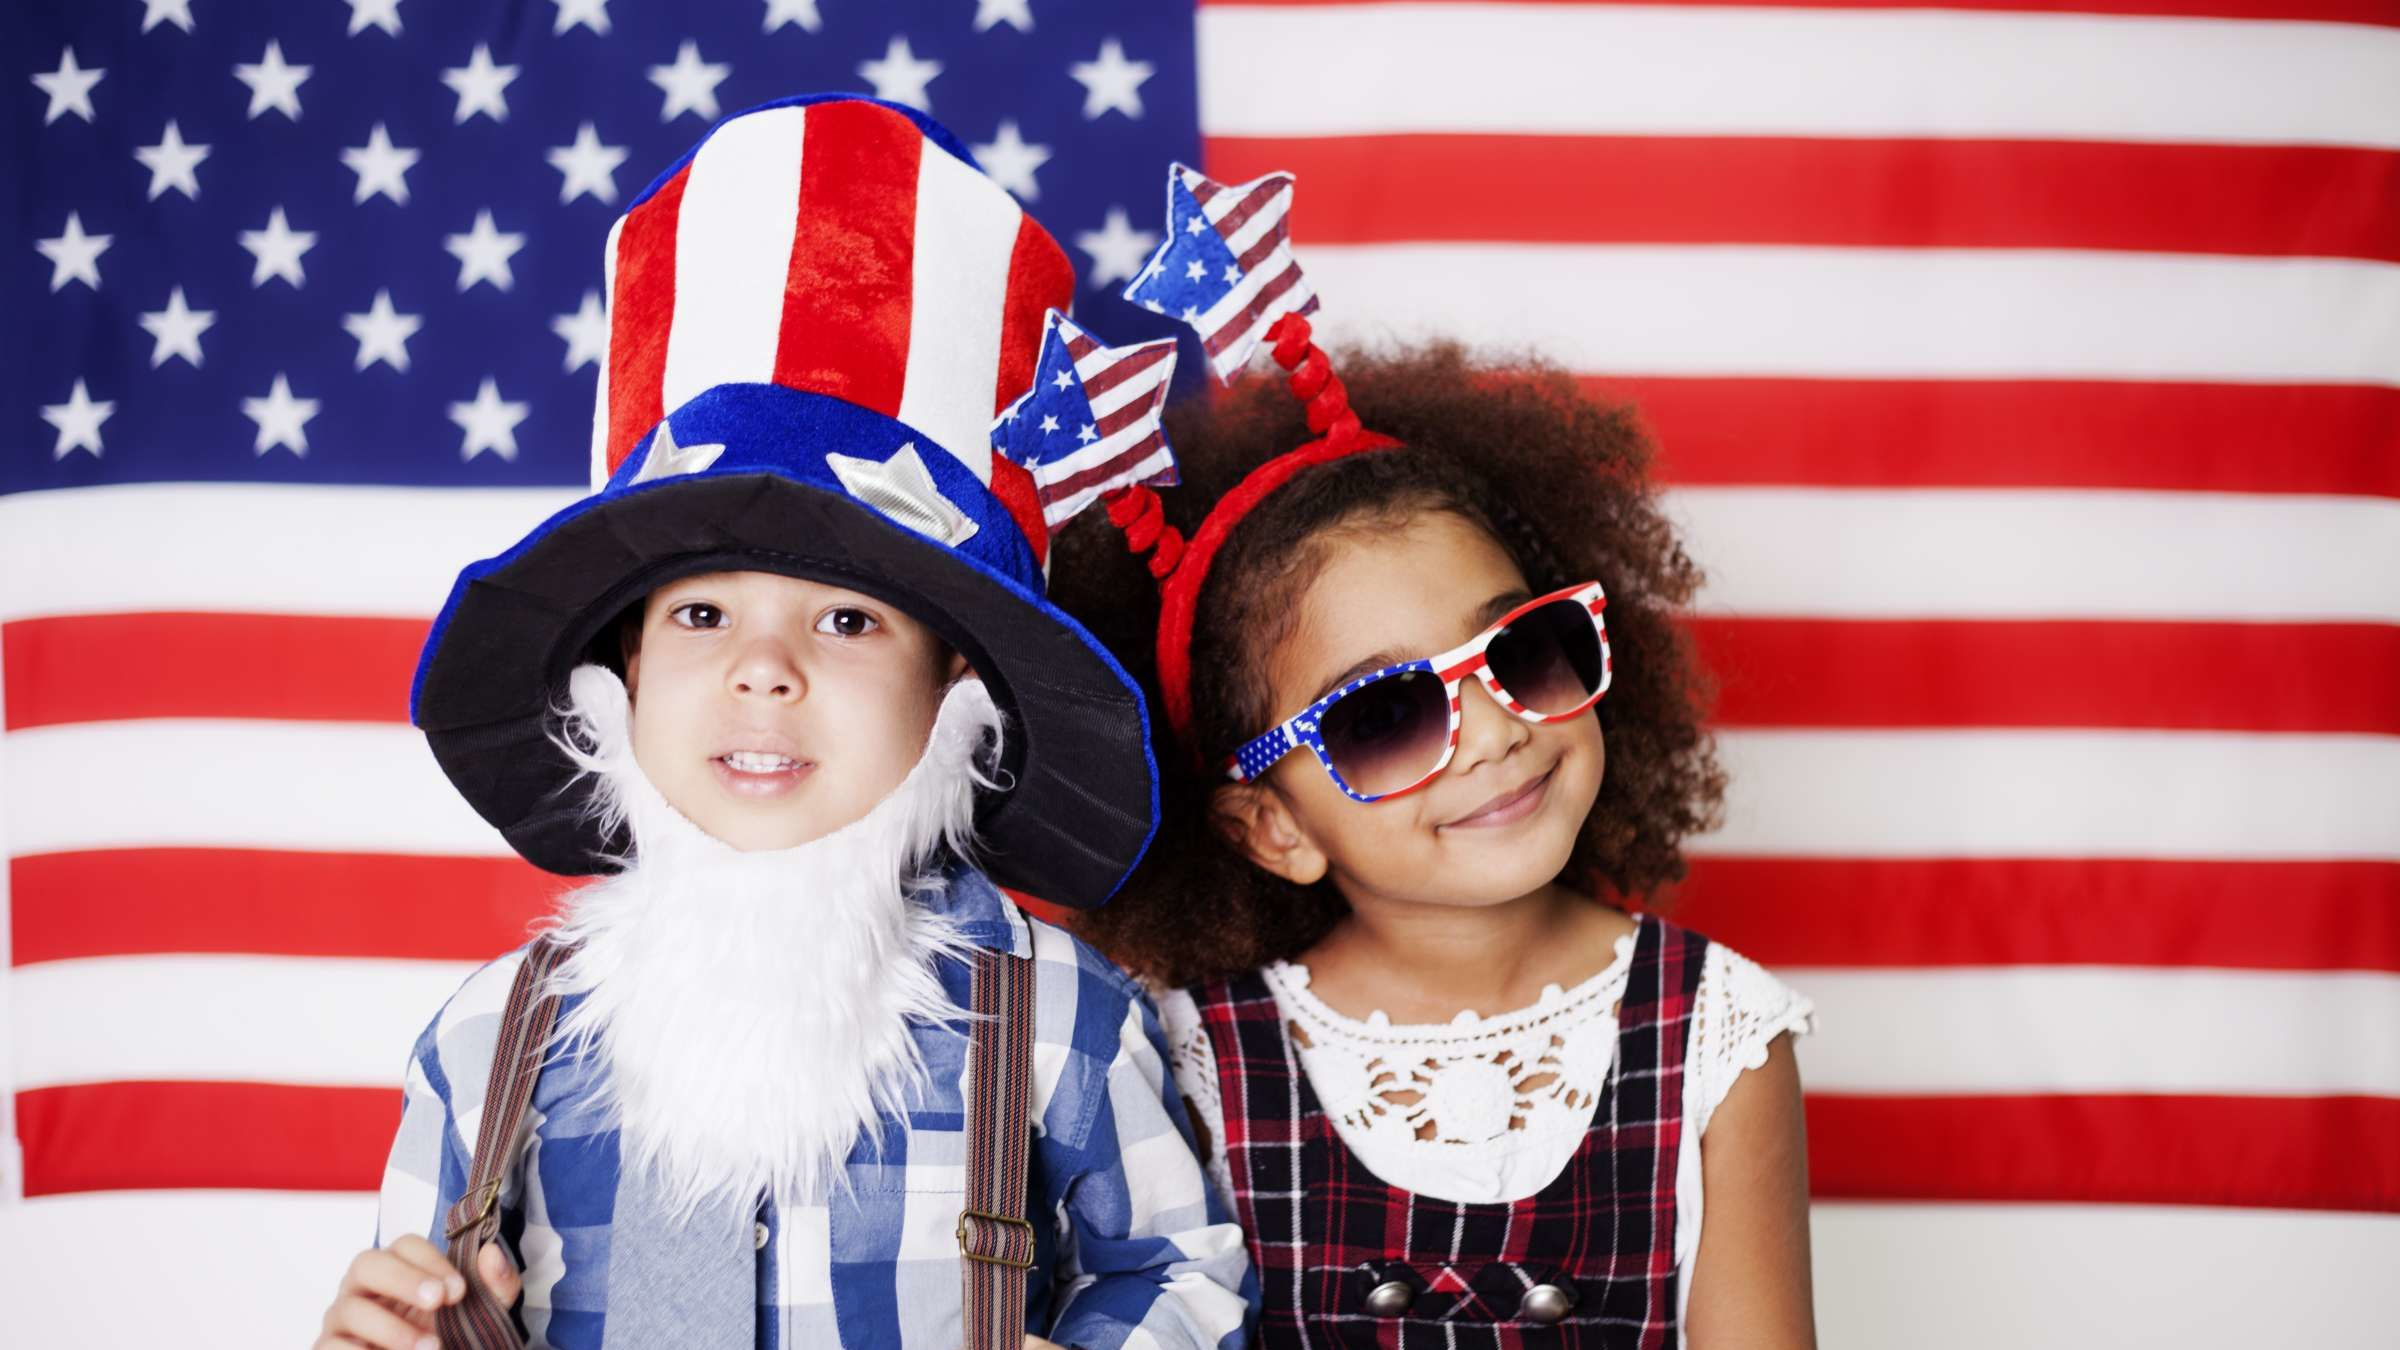 10 Things You Didn't Know About the Fourth of July